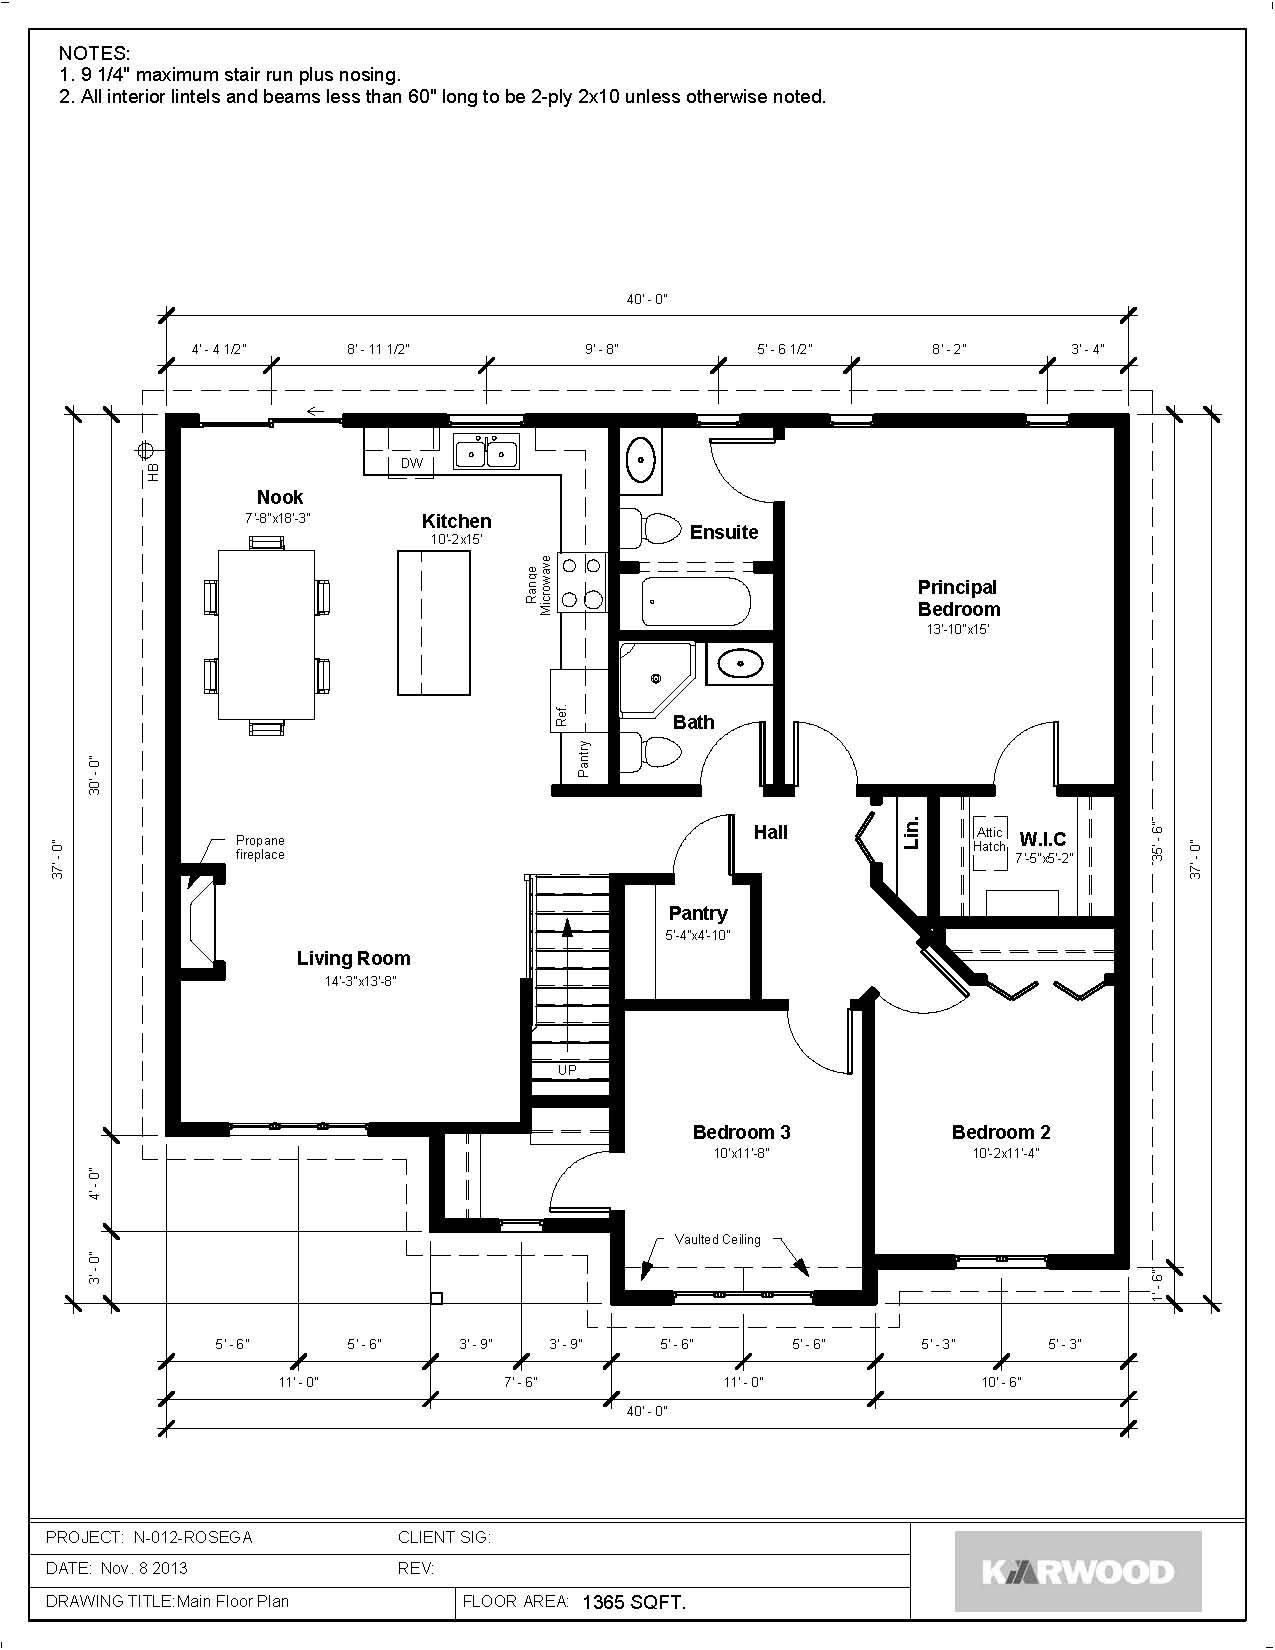 Pages from N-012-ROSEGA (web plans)-2.jpg